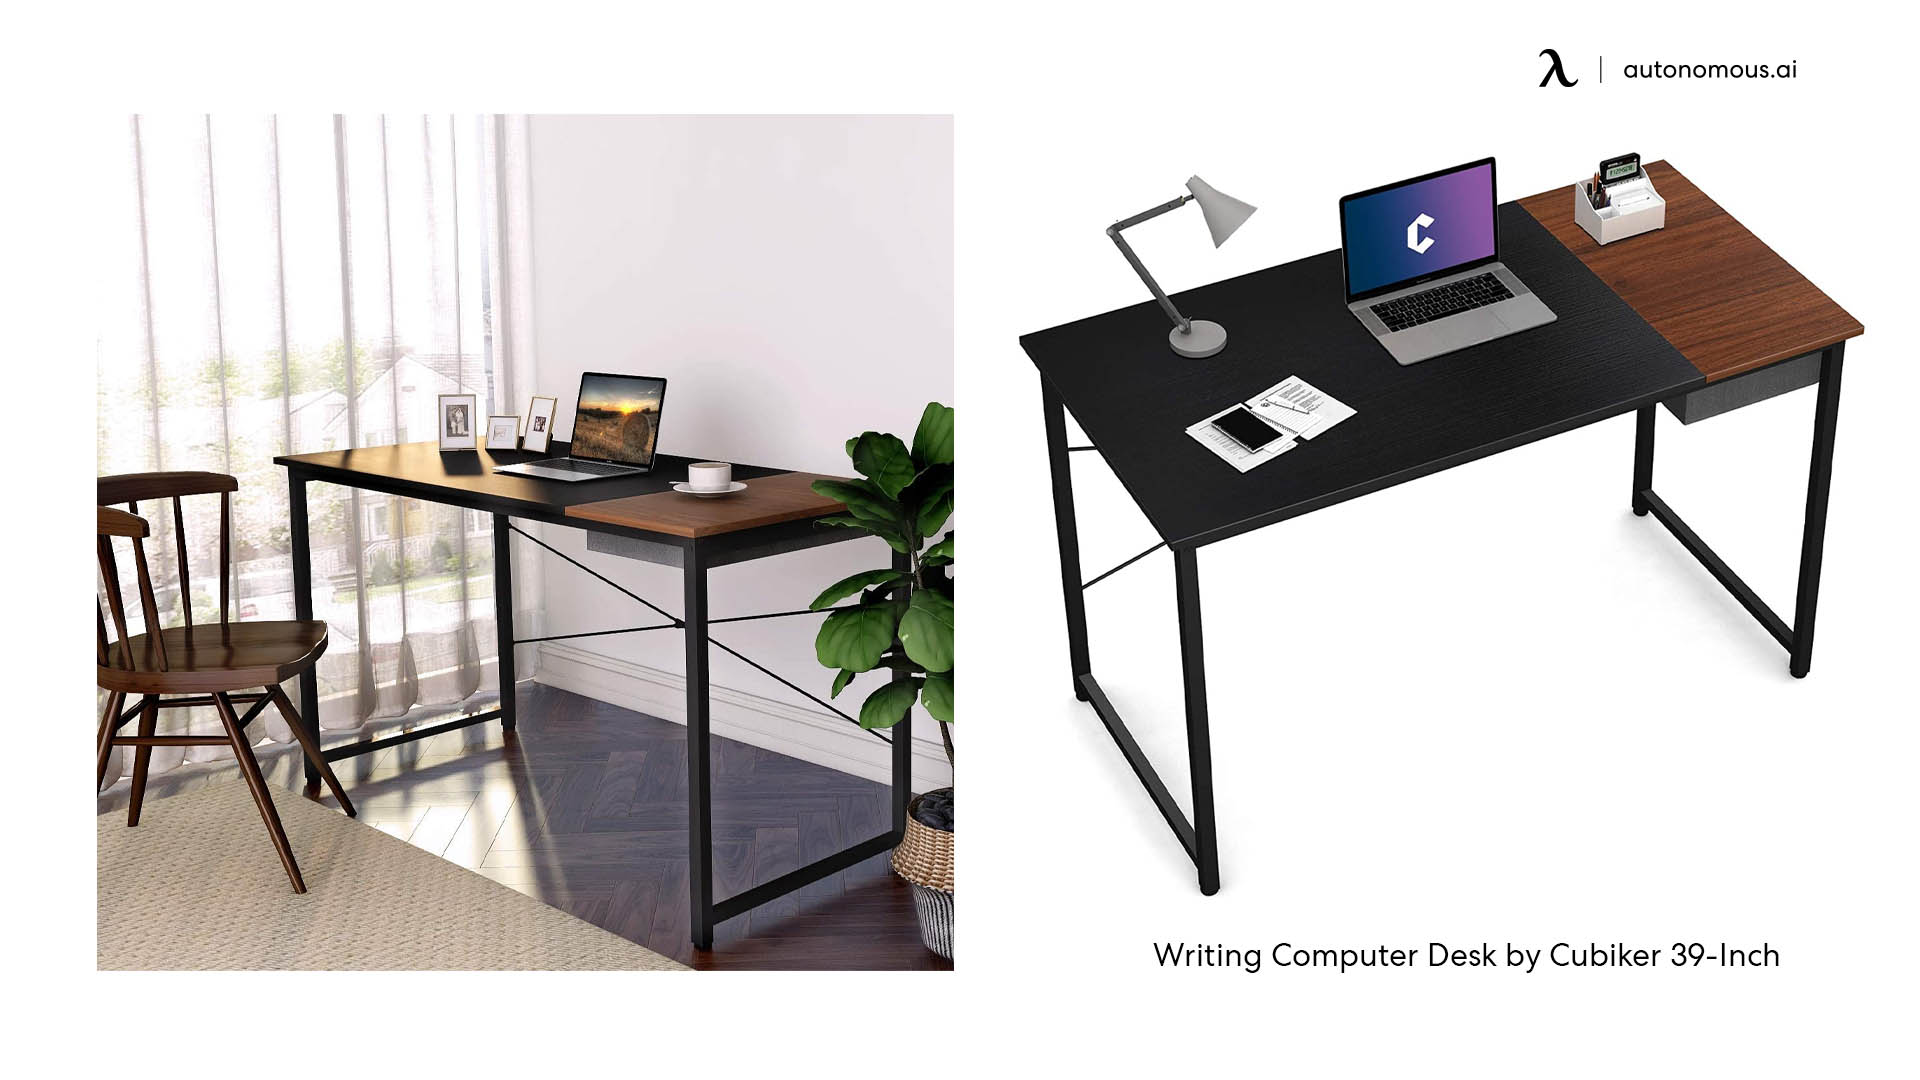 Cubiker Writing and Computer desk